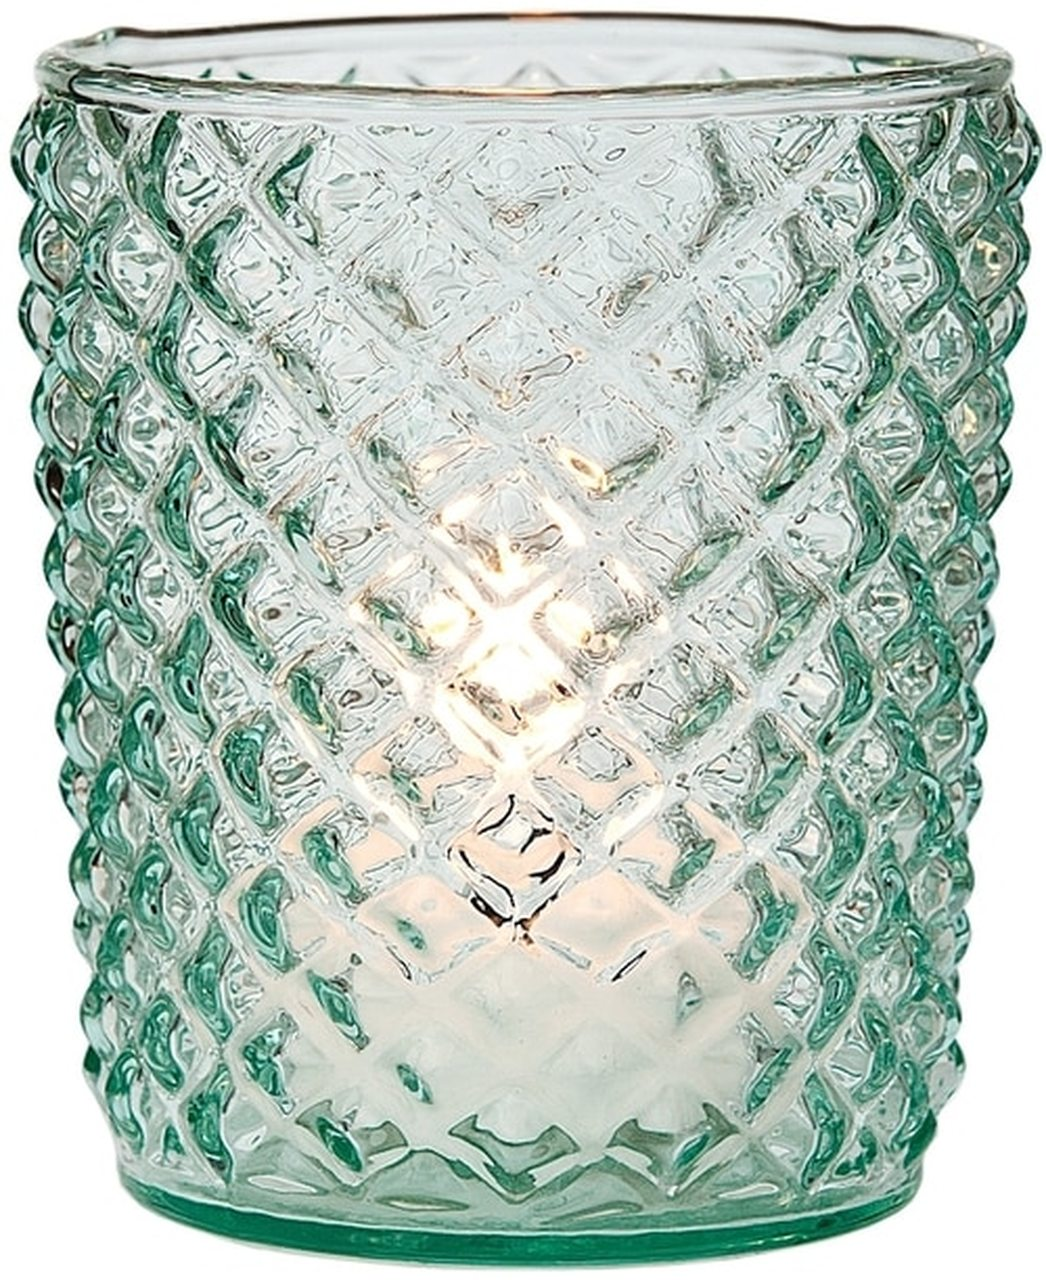 Vintage Glass Candle Holder (3-Inch, Zariah Design, Vintage Green) - For Use with Tea Lights - For Home Decor, Parties, and Wedding Decorations - Luna Bazaar | Boho & Vintage Style Decor